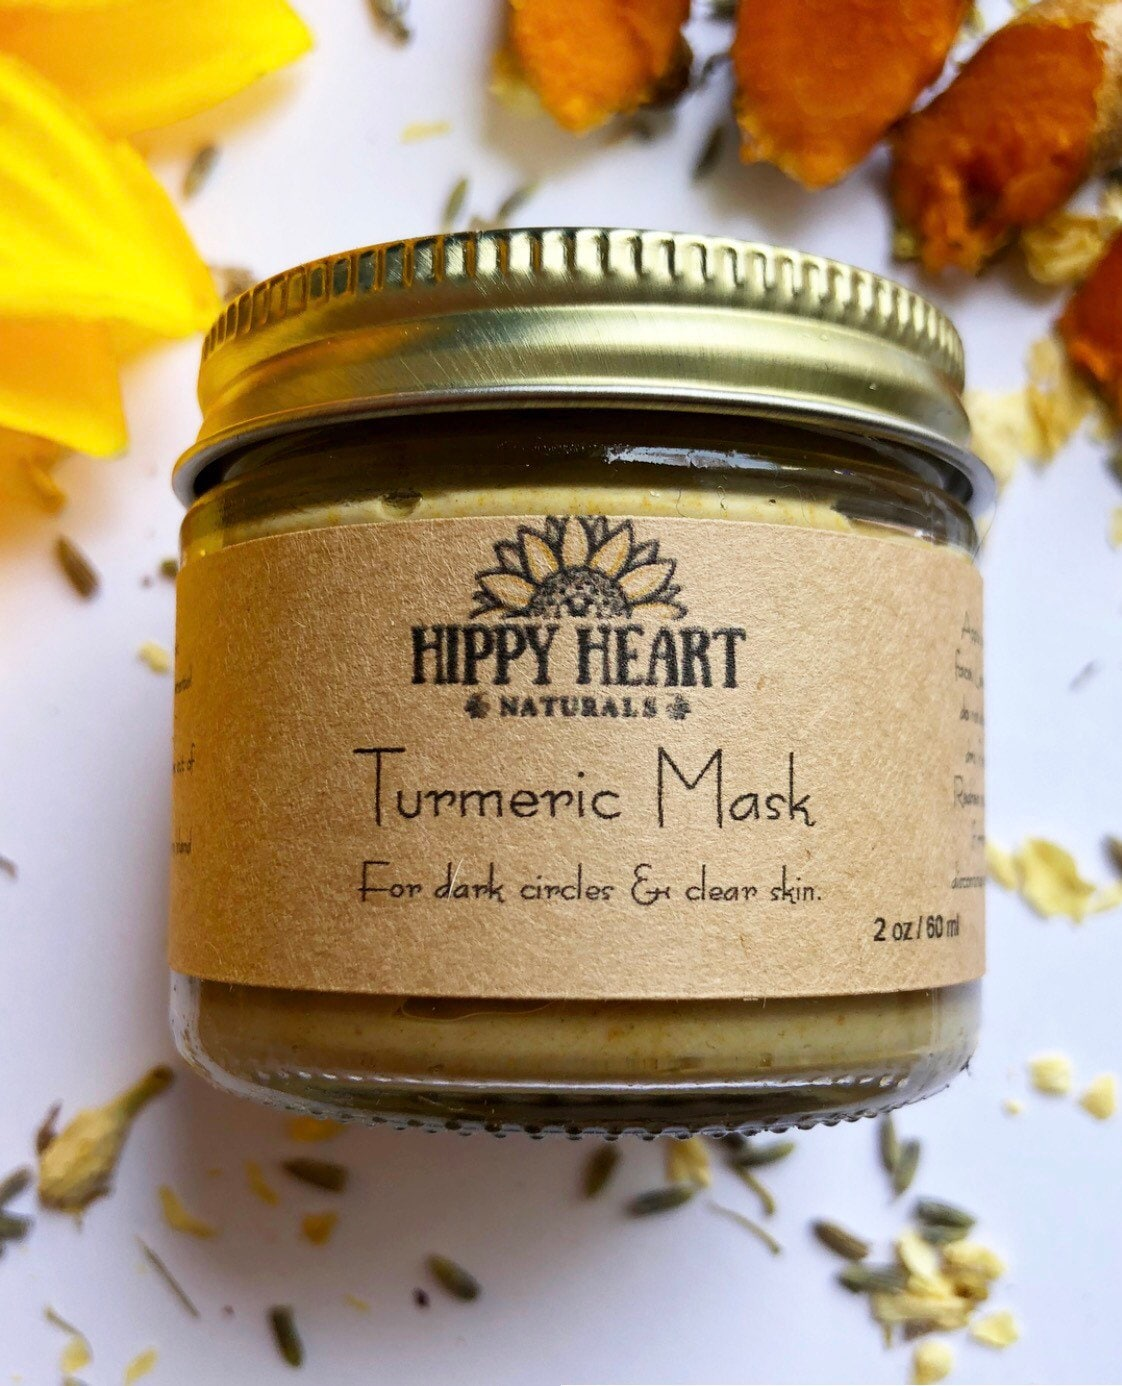 Dark circles turmeric mask / under eye / eye bags / acne